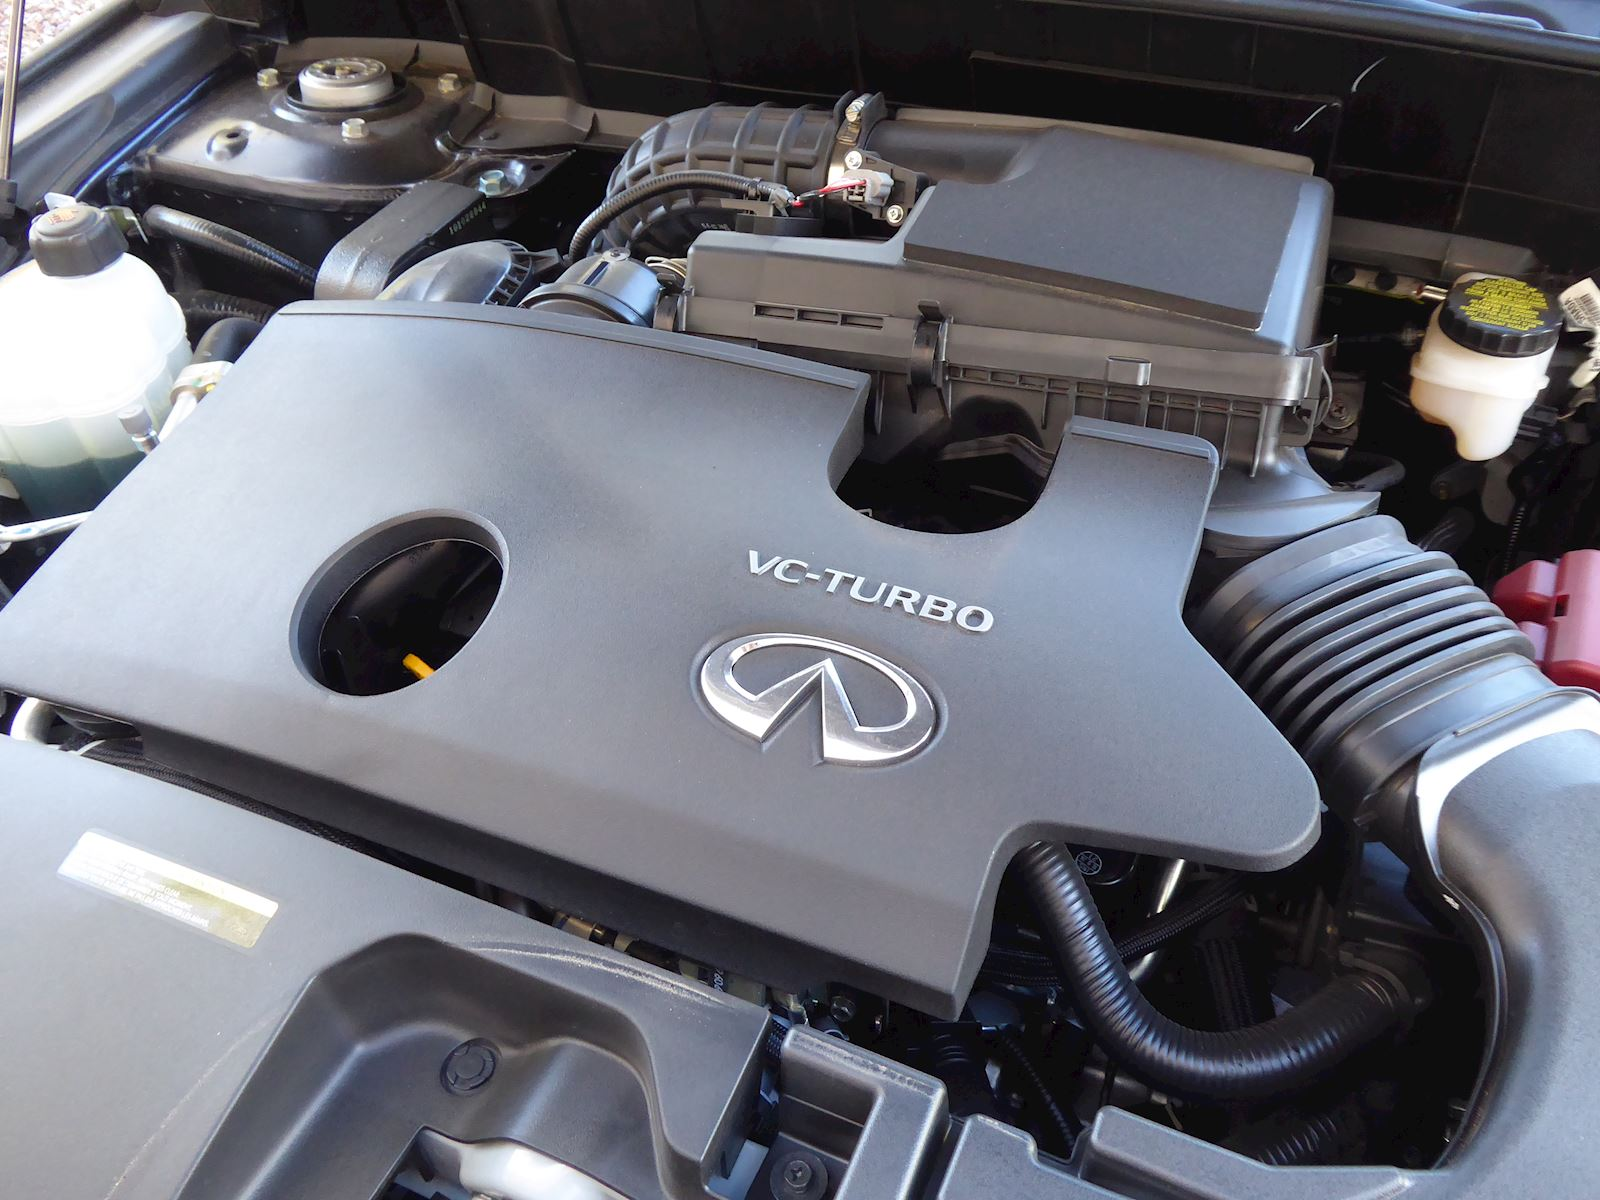 2020 Infiniti QX50 turbocharged variable compression 4 cylinder engine